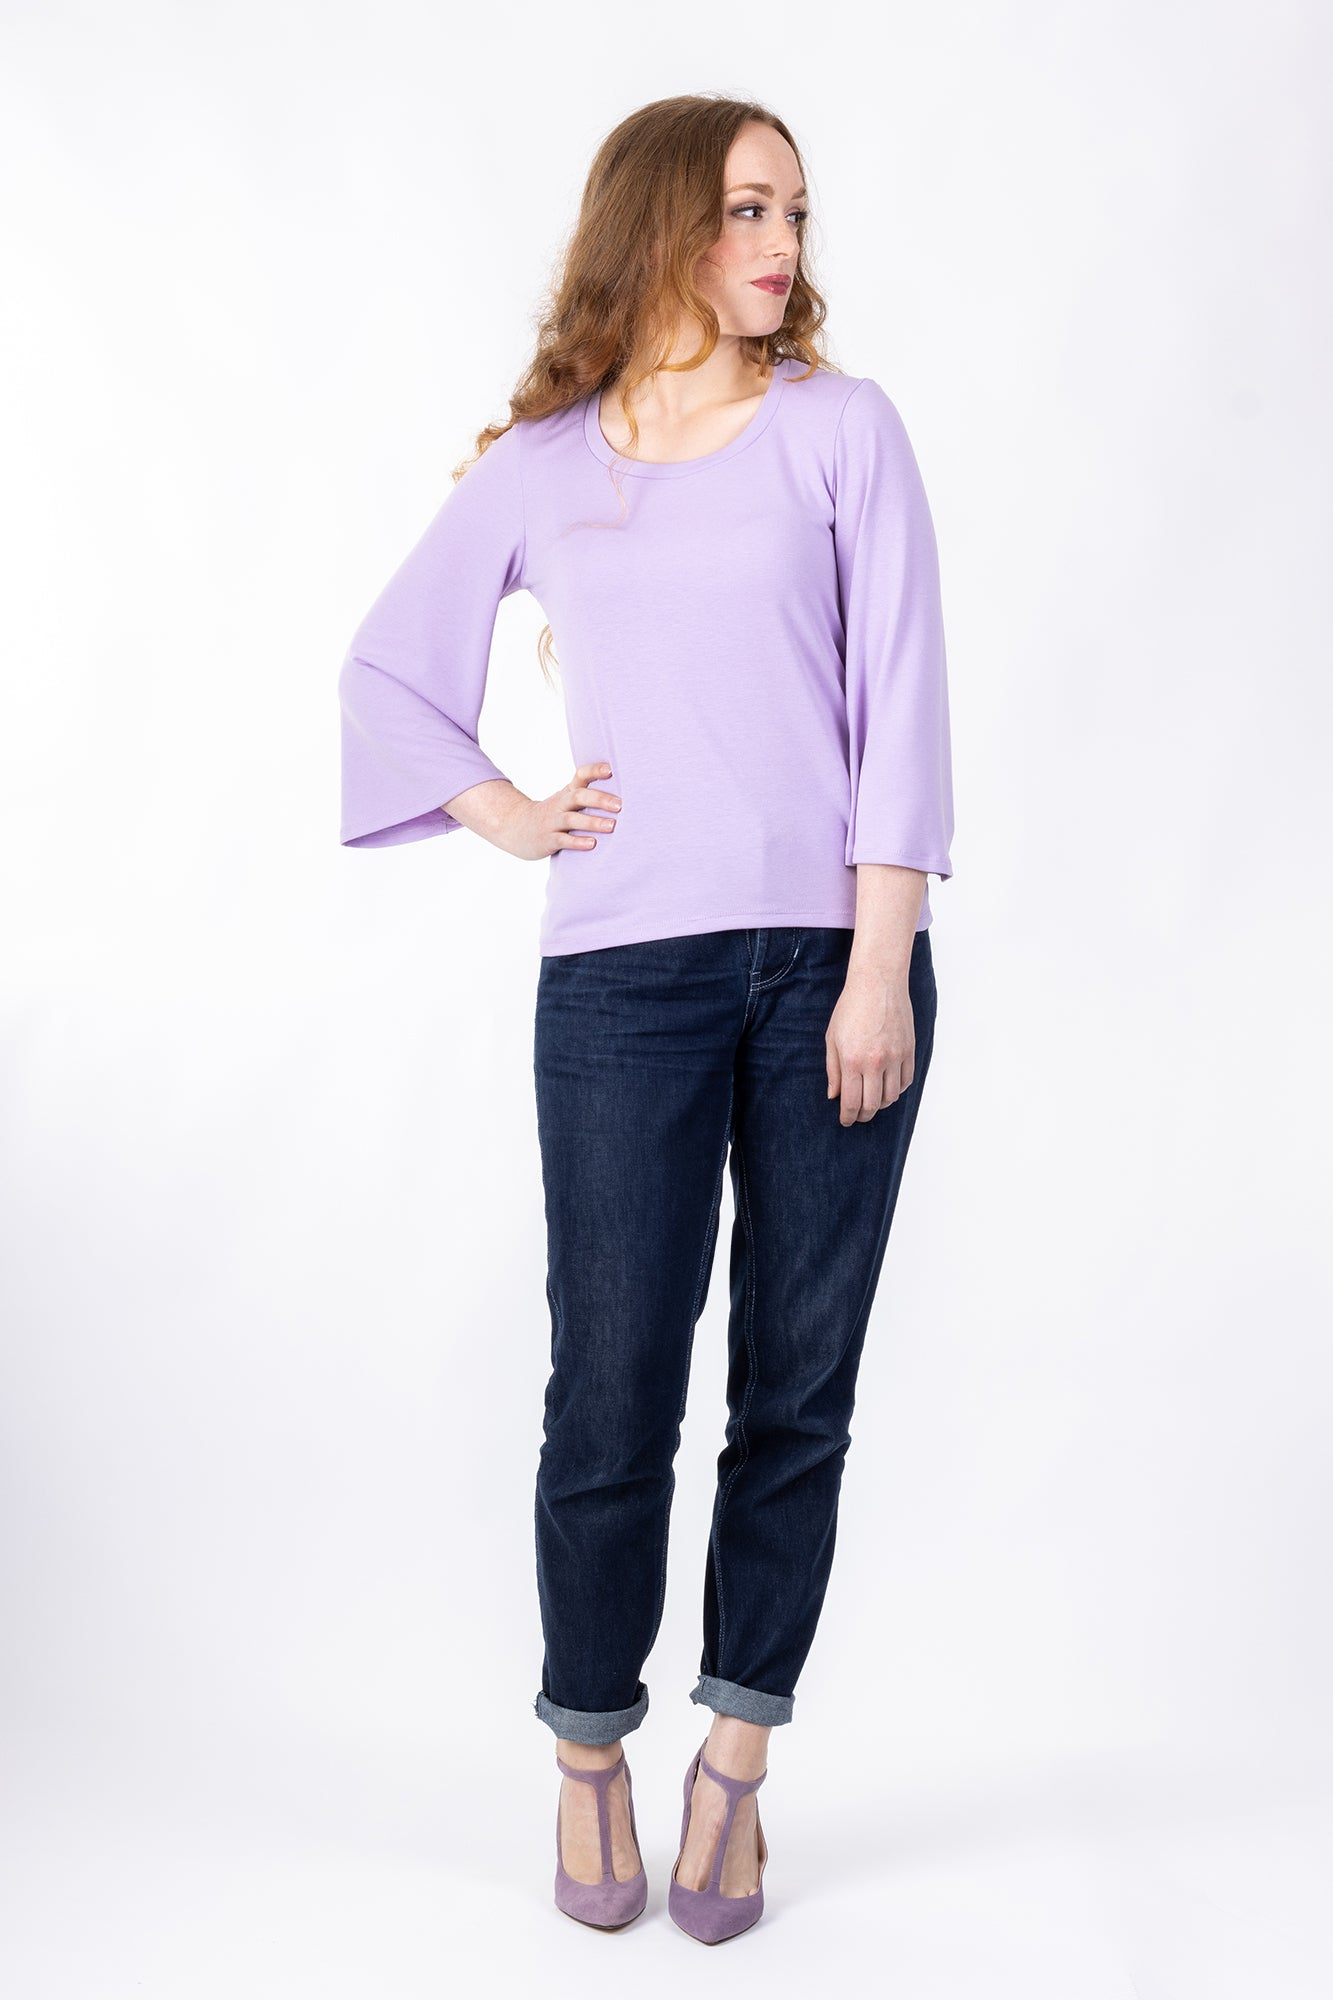 Forget-Me-Not Vera three-quarter gathered sleeve shirt pattern in purple, full front view